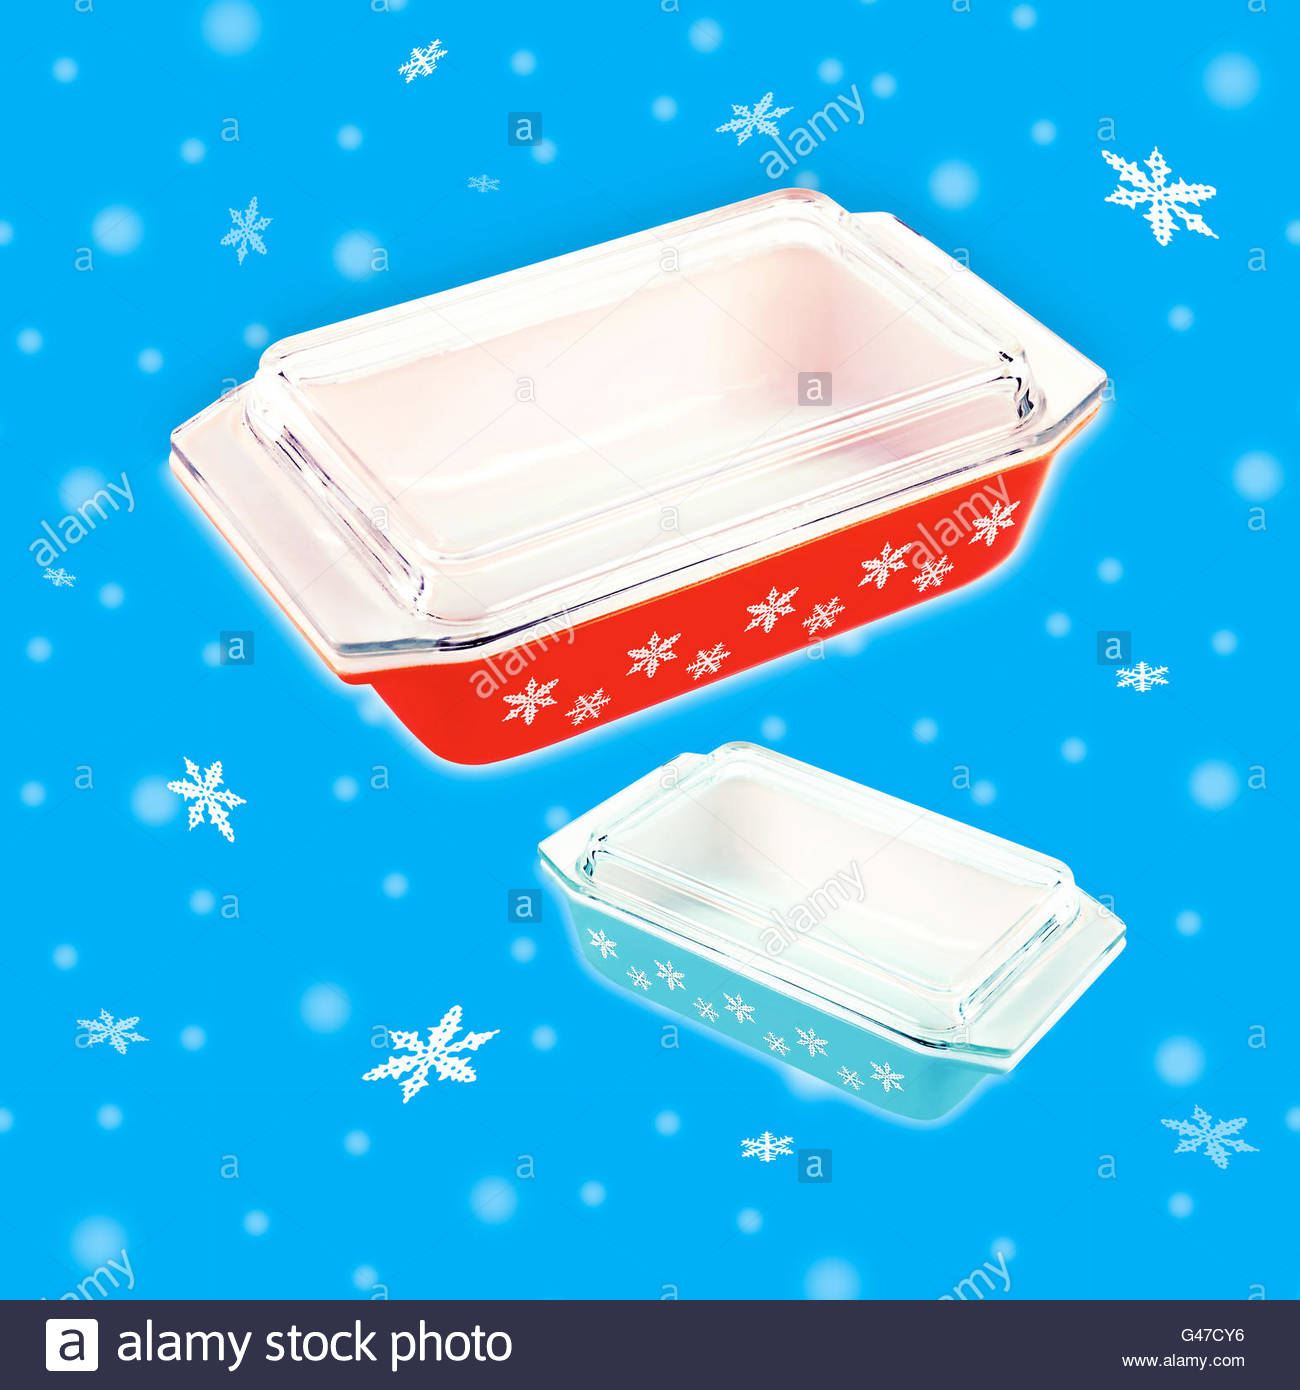 Mid century glass casserole dishes with snowflakes - Stock Image